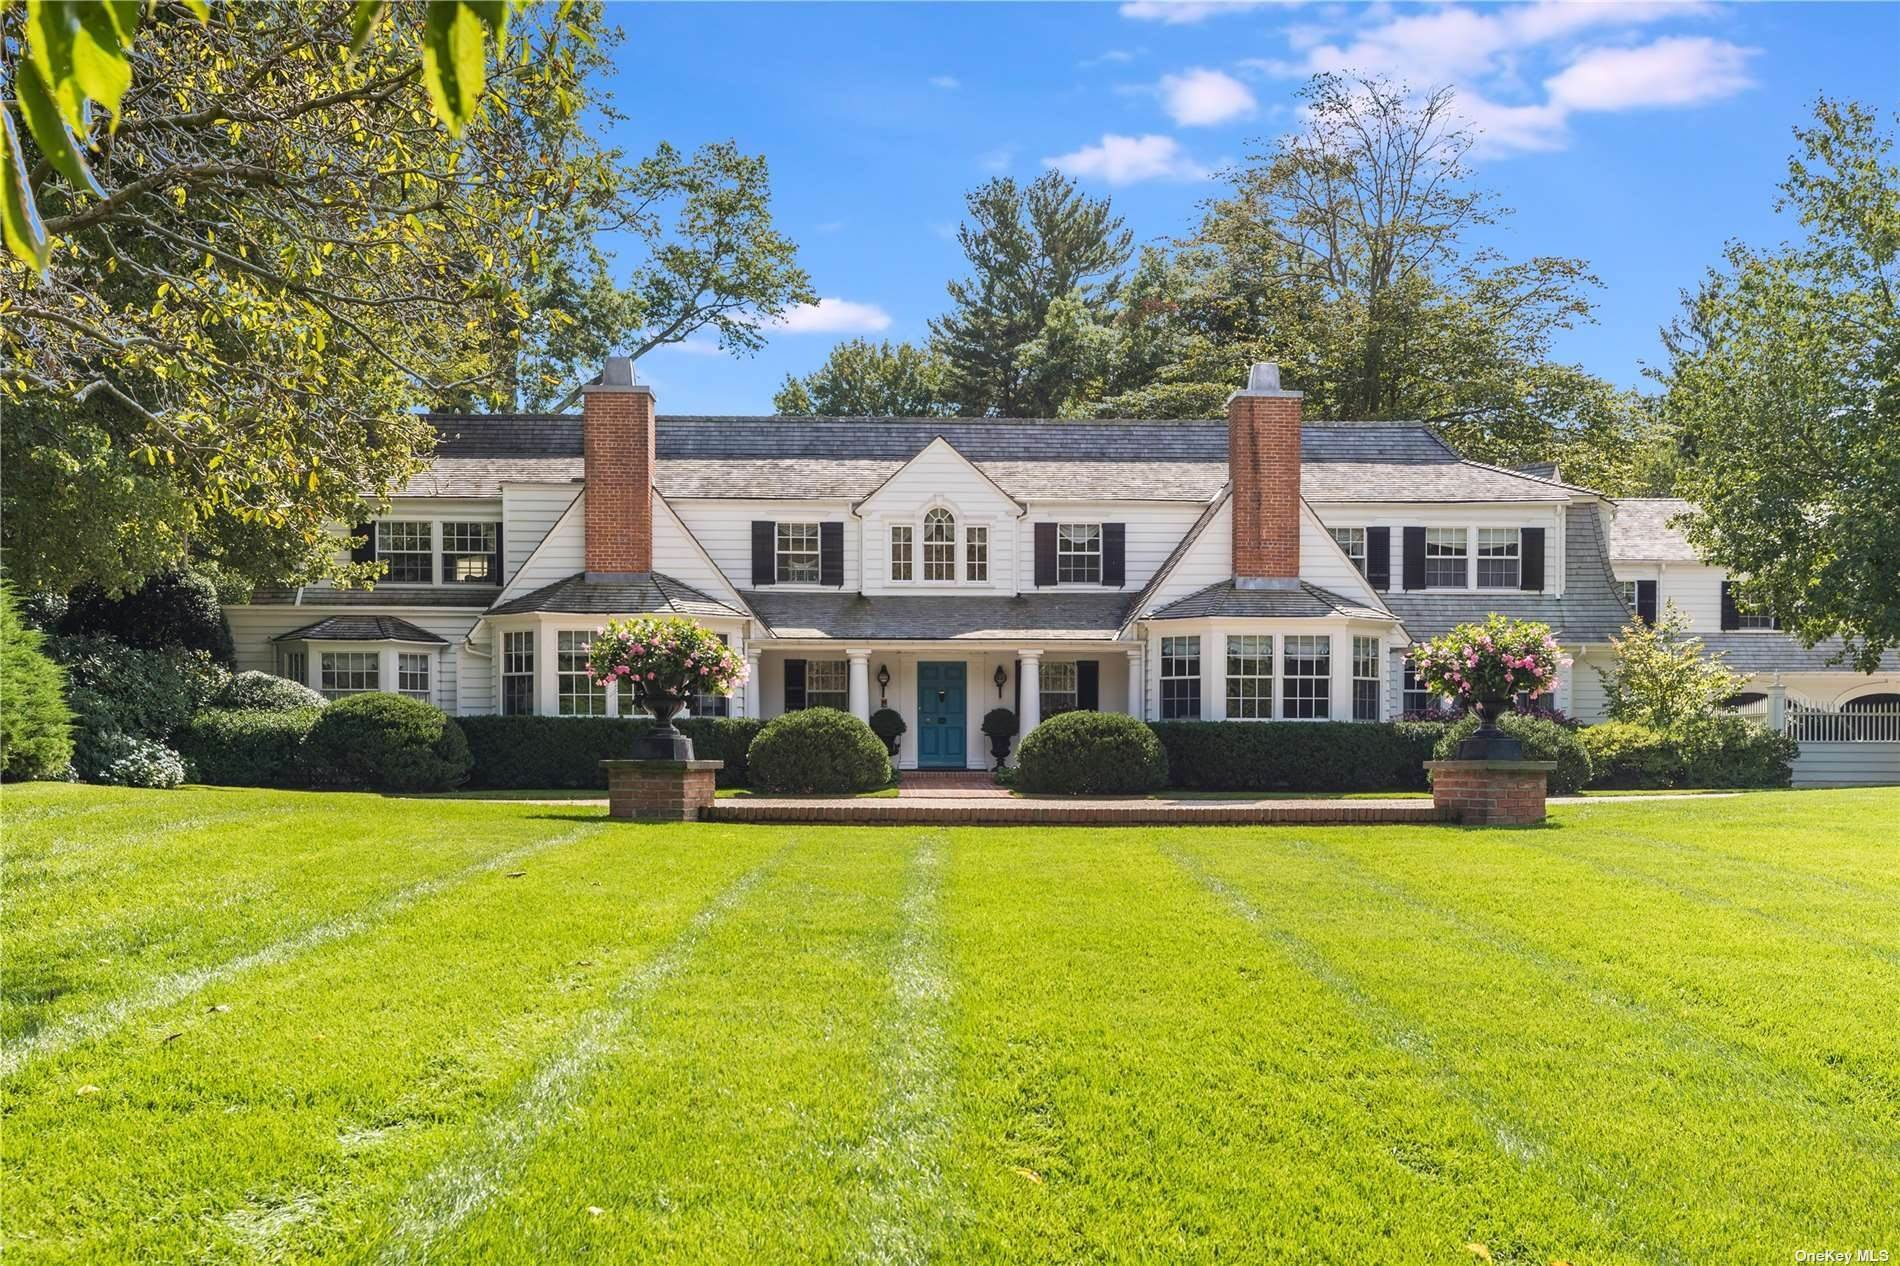 Residential for Sale at 84 Feeks Lane Locust Valley, New York 11560 United States